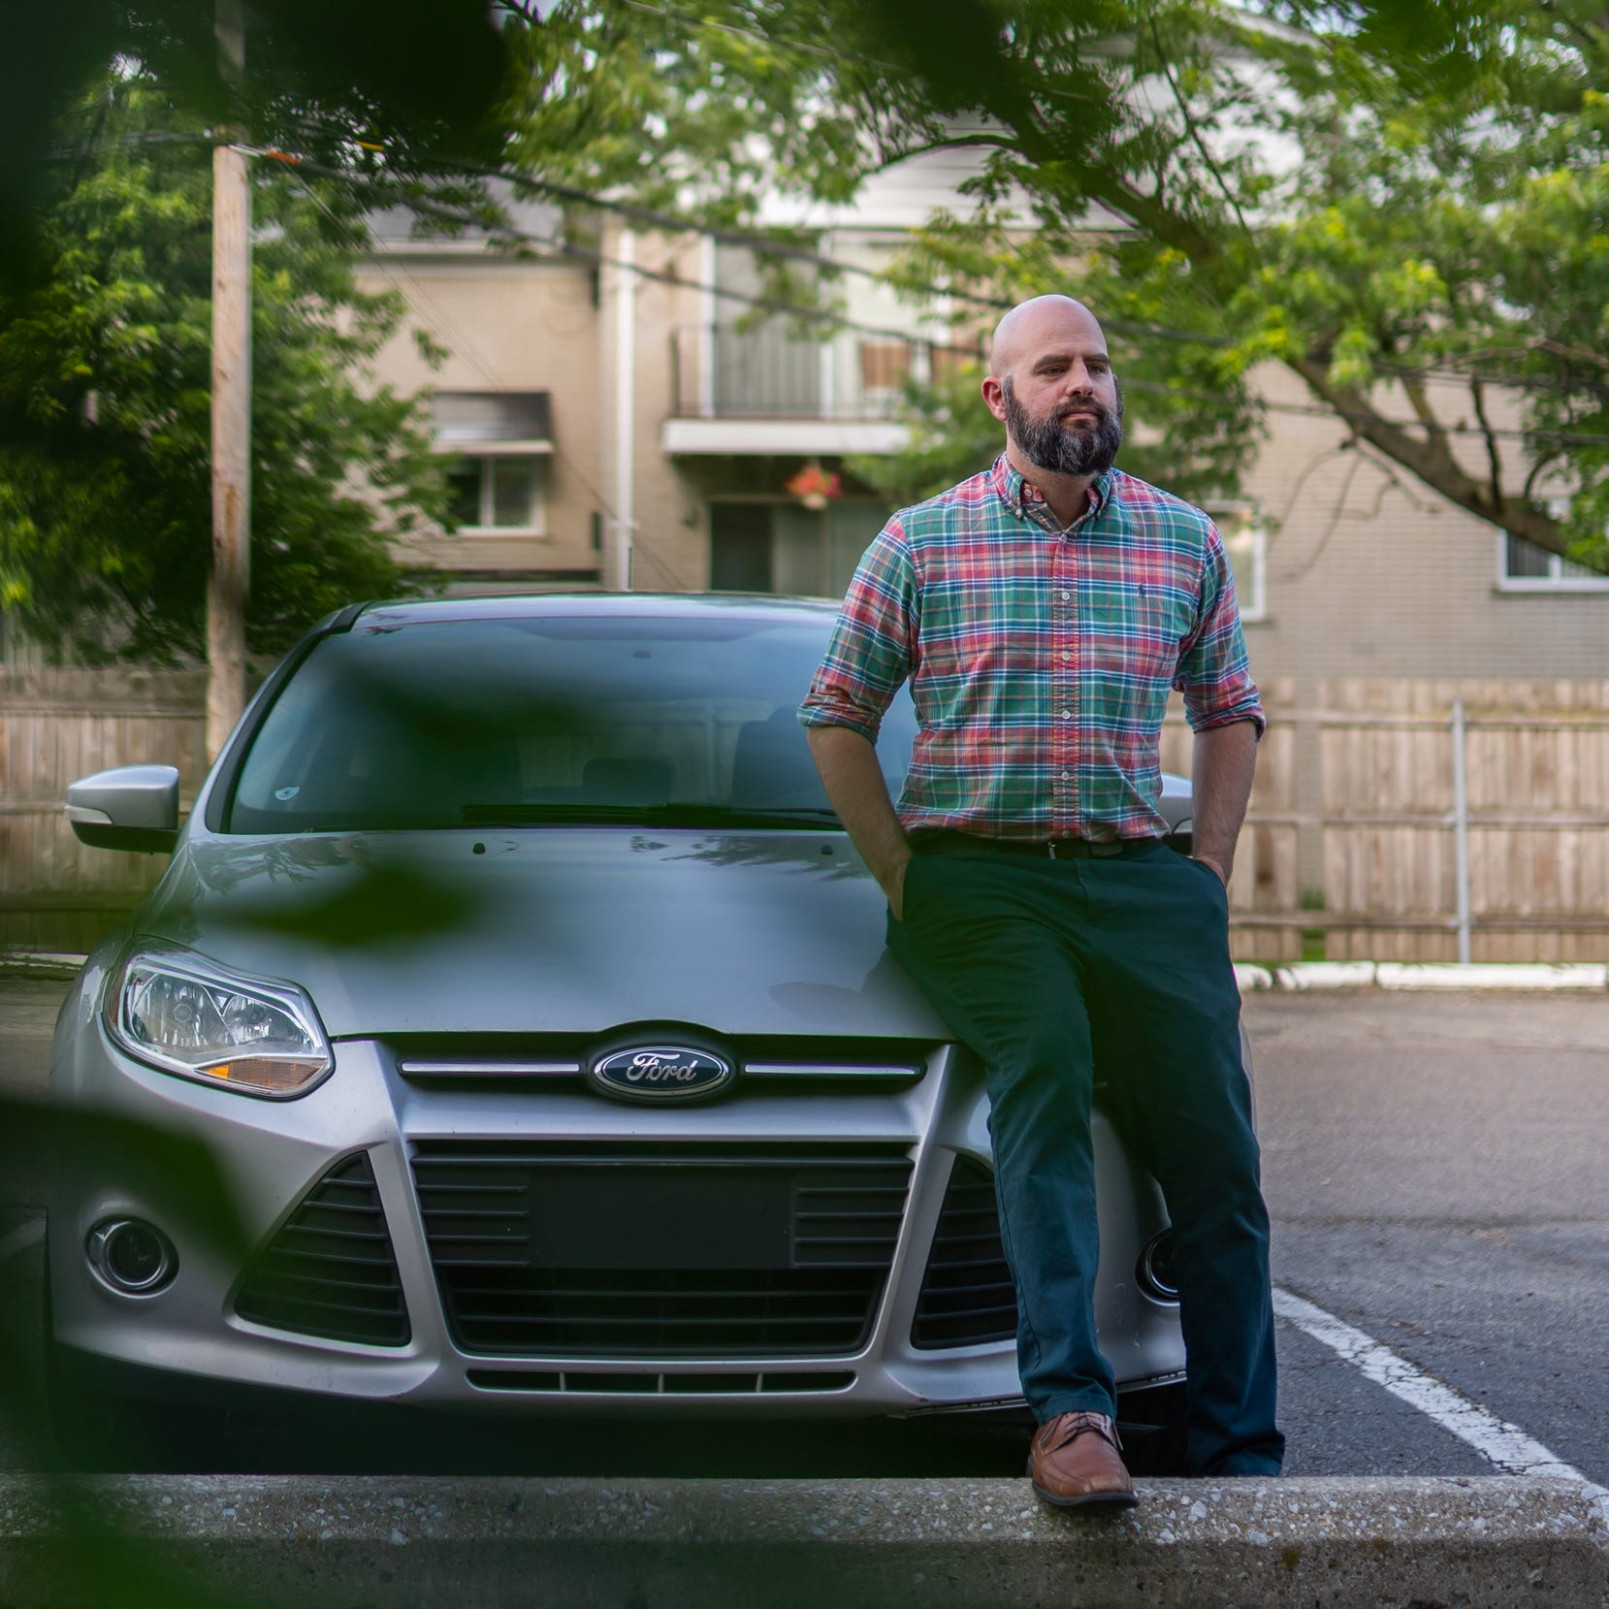 Out of Gear: Follow the full Ford investigation - ford buyback program 2020